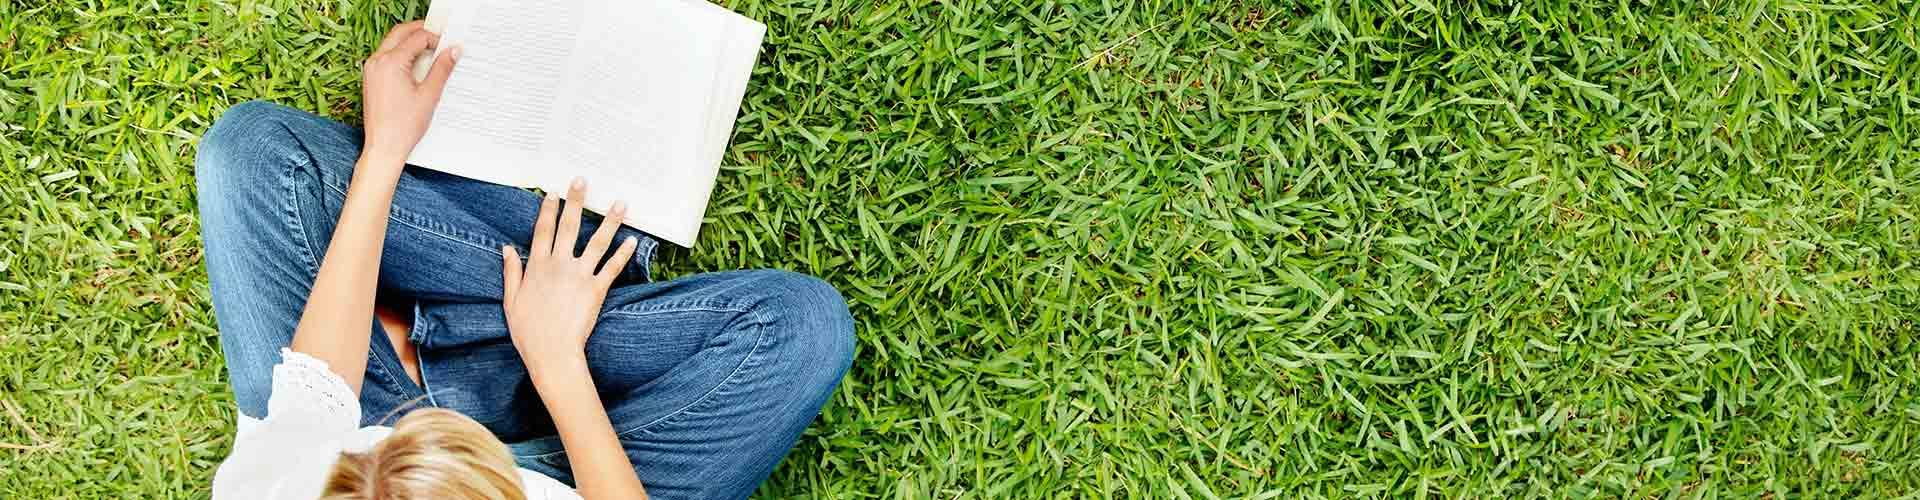 Person reading a book in the grass